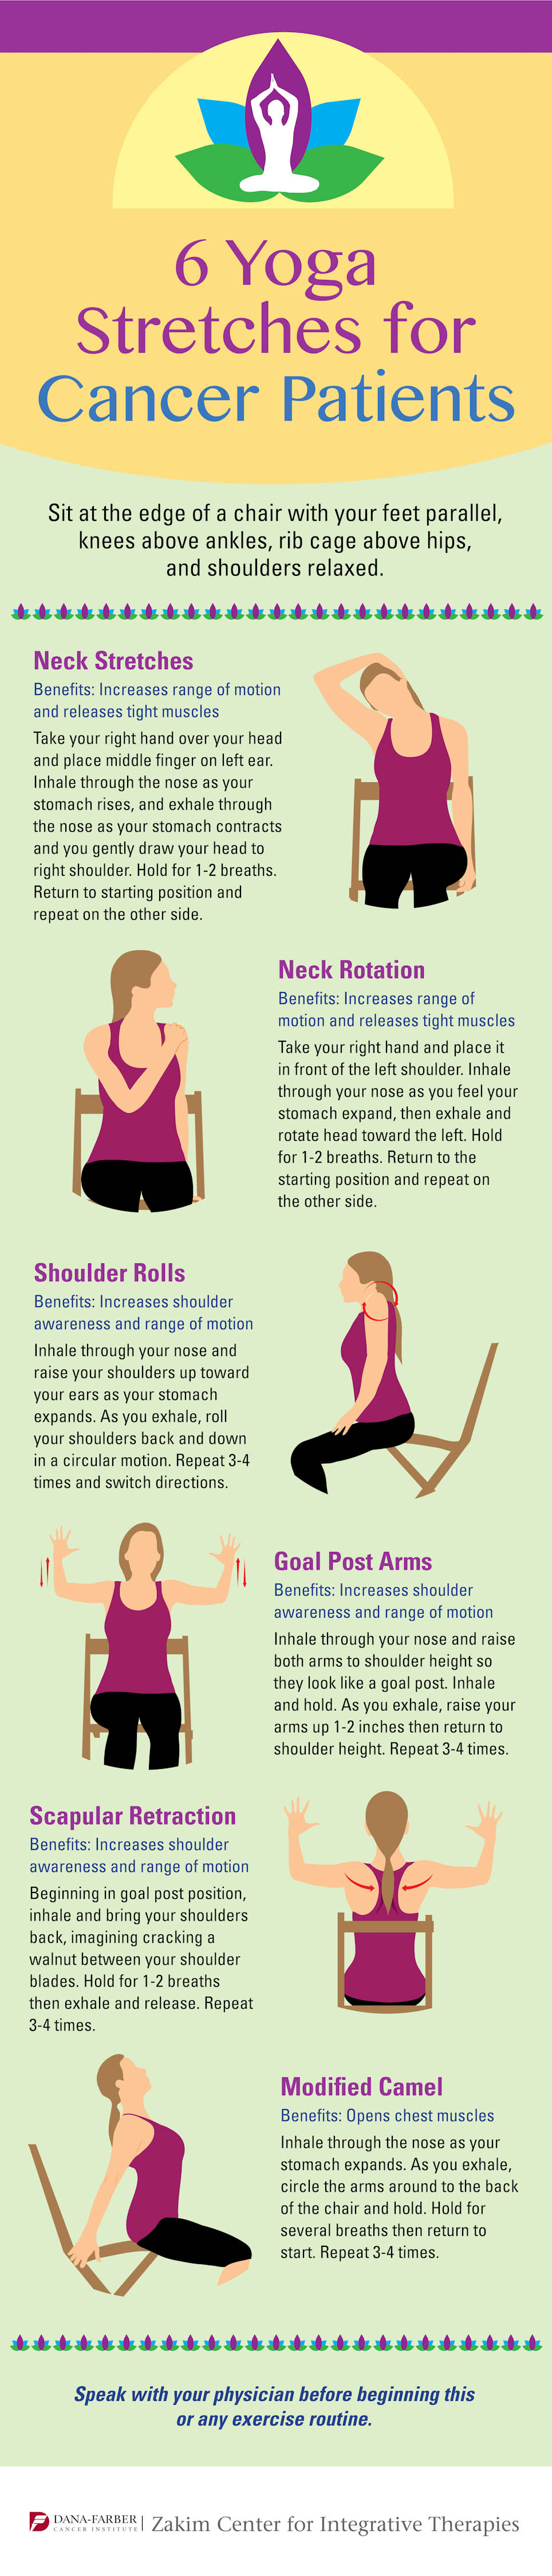 Yoga for cancer patients infographic